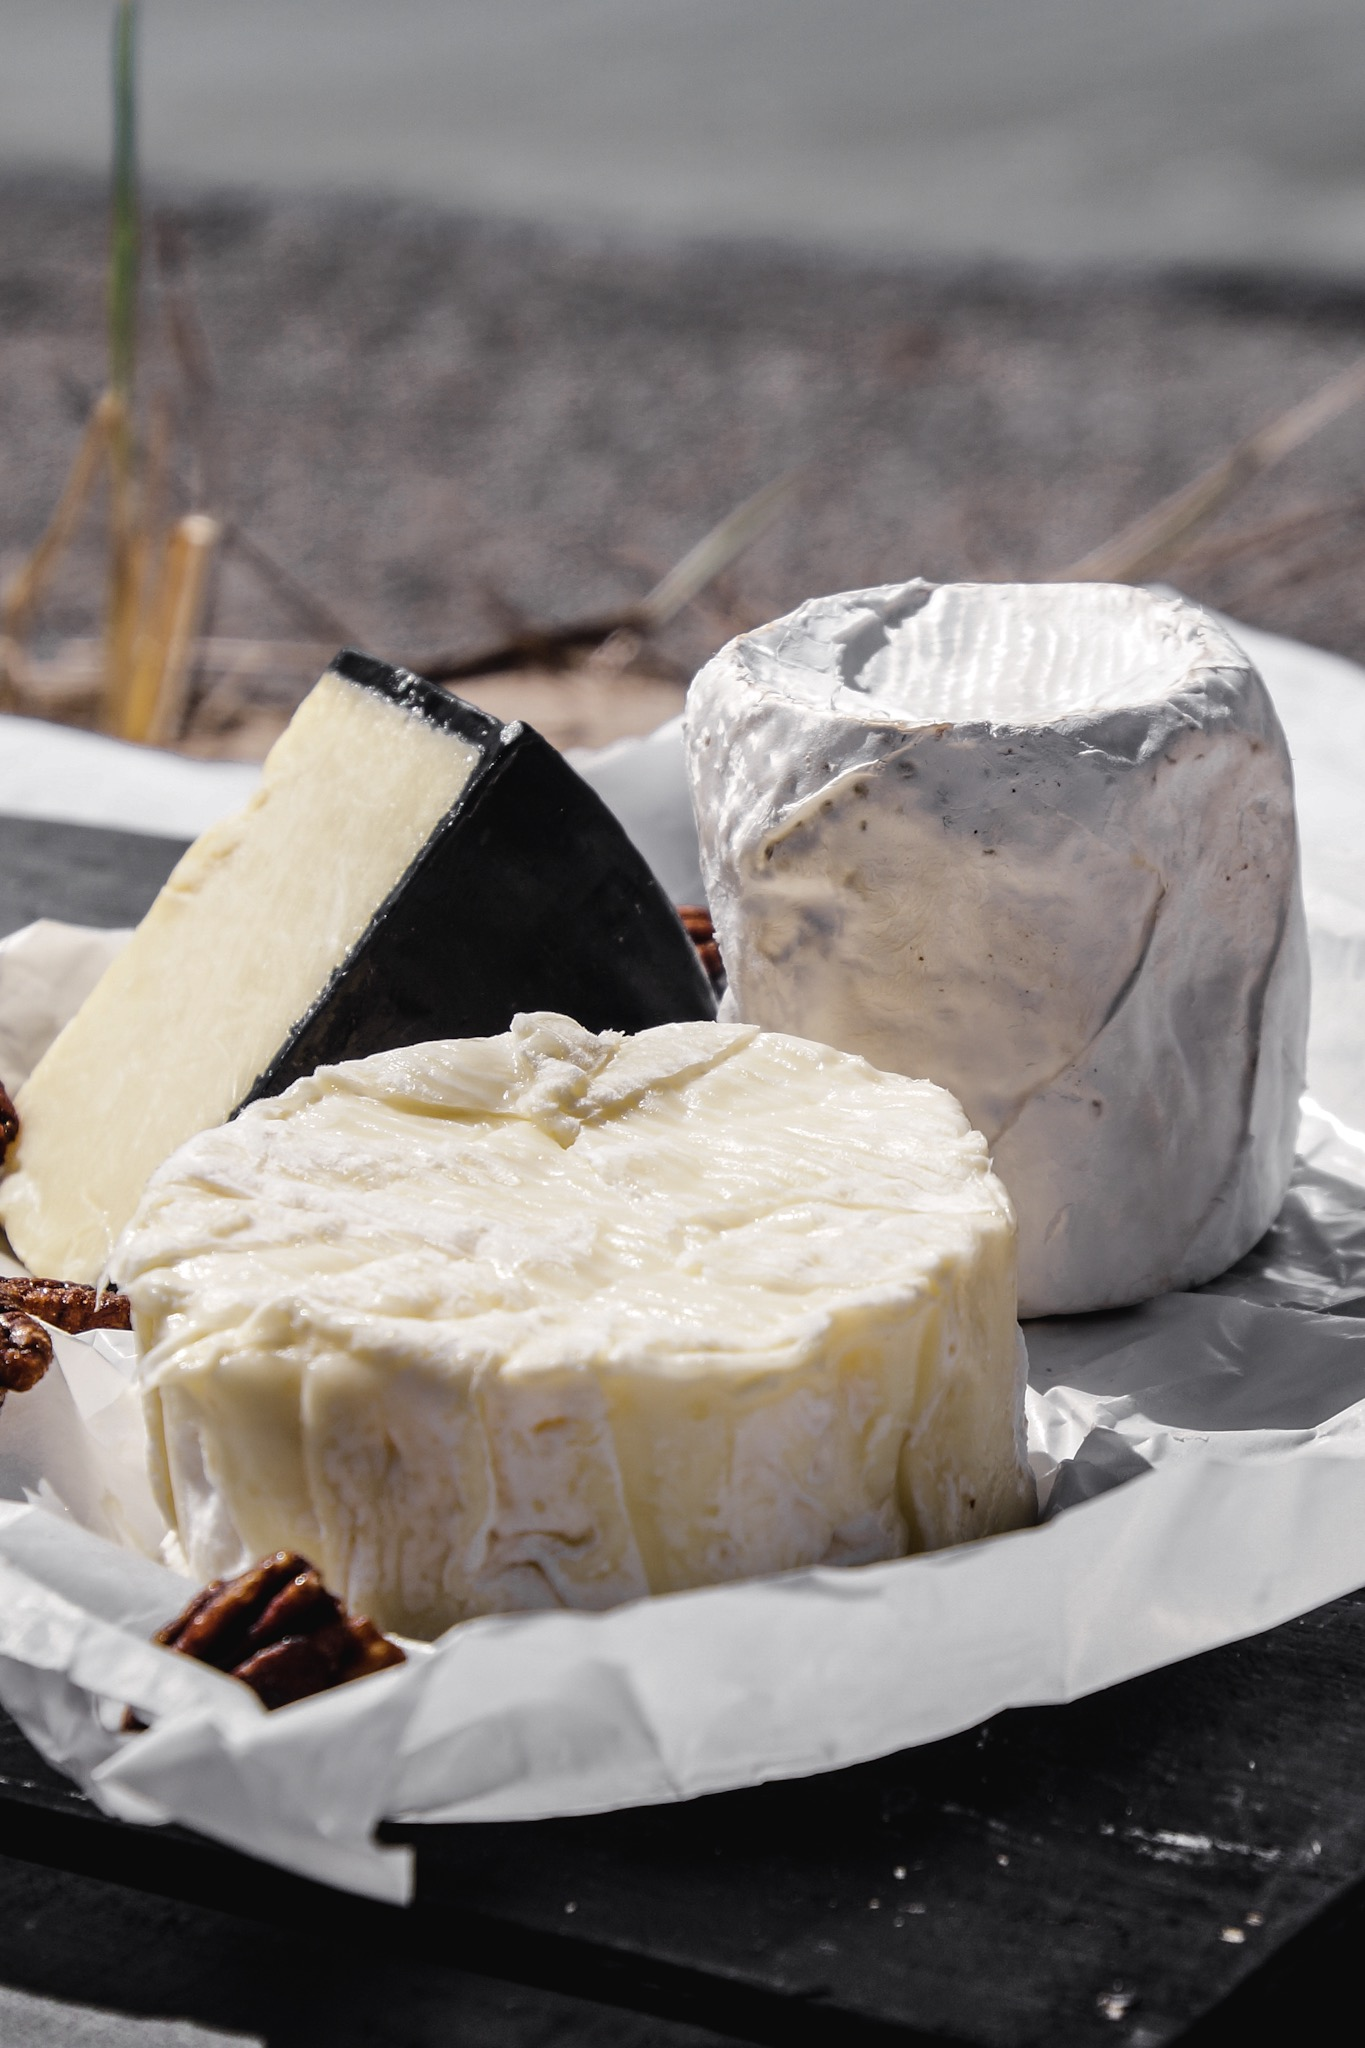 A trio of cheeses help build the charcuterie for this amazing summer picnic